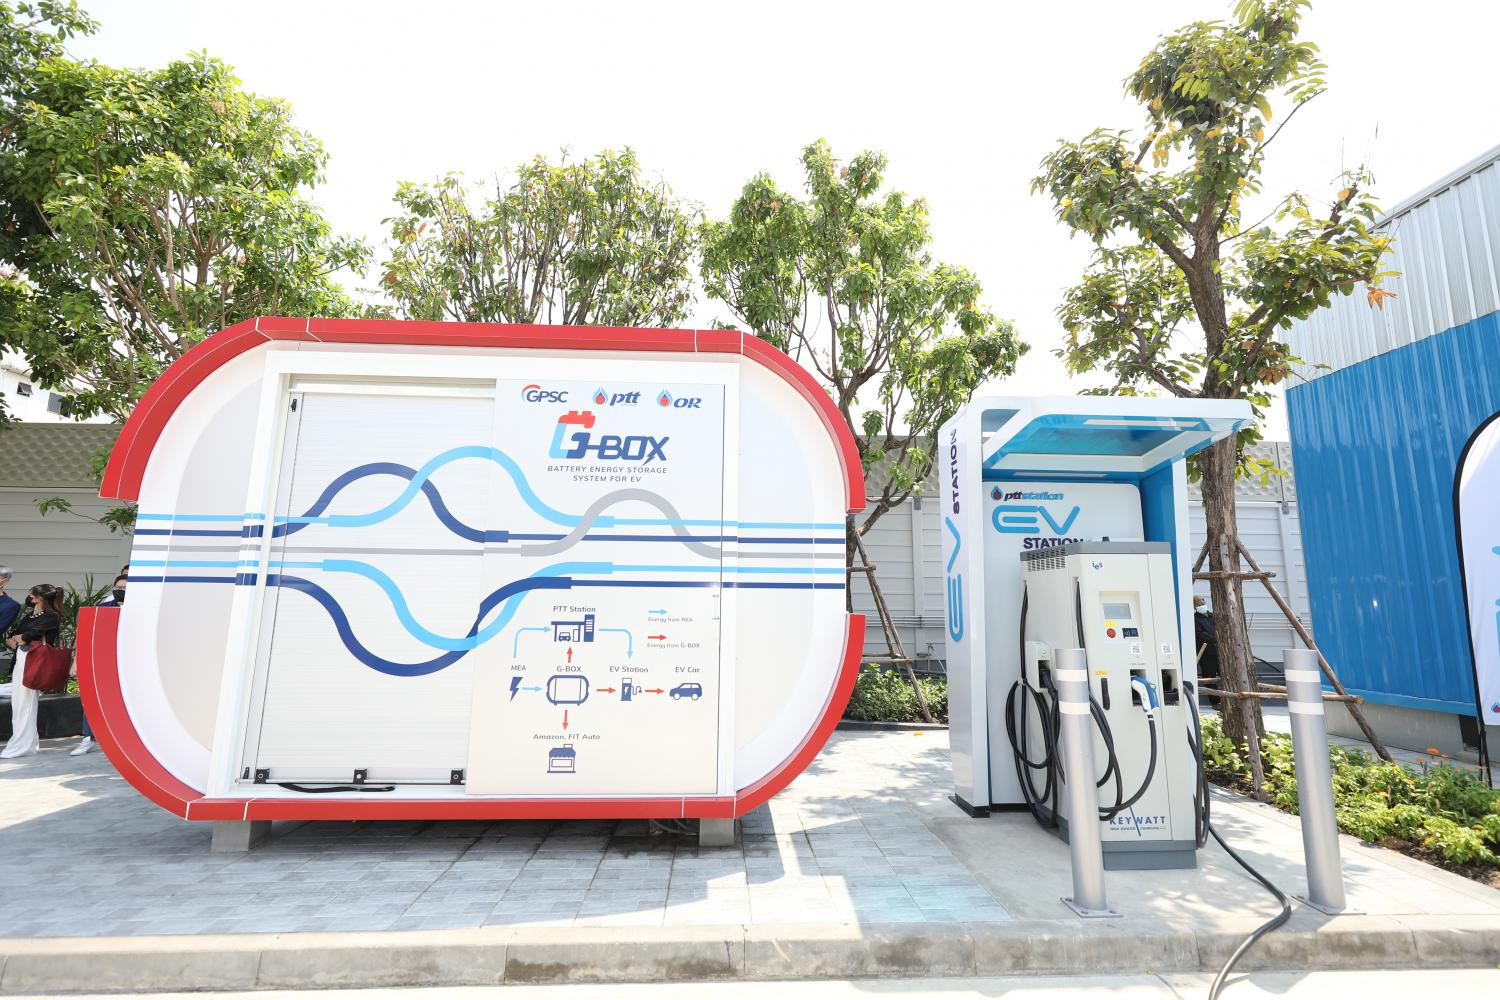 PTT, Foxconn cooperate on EV facility